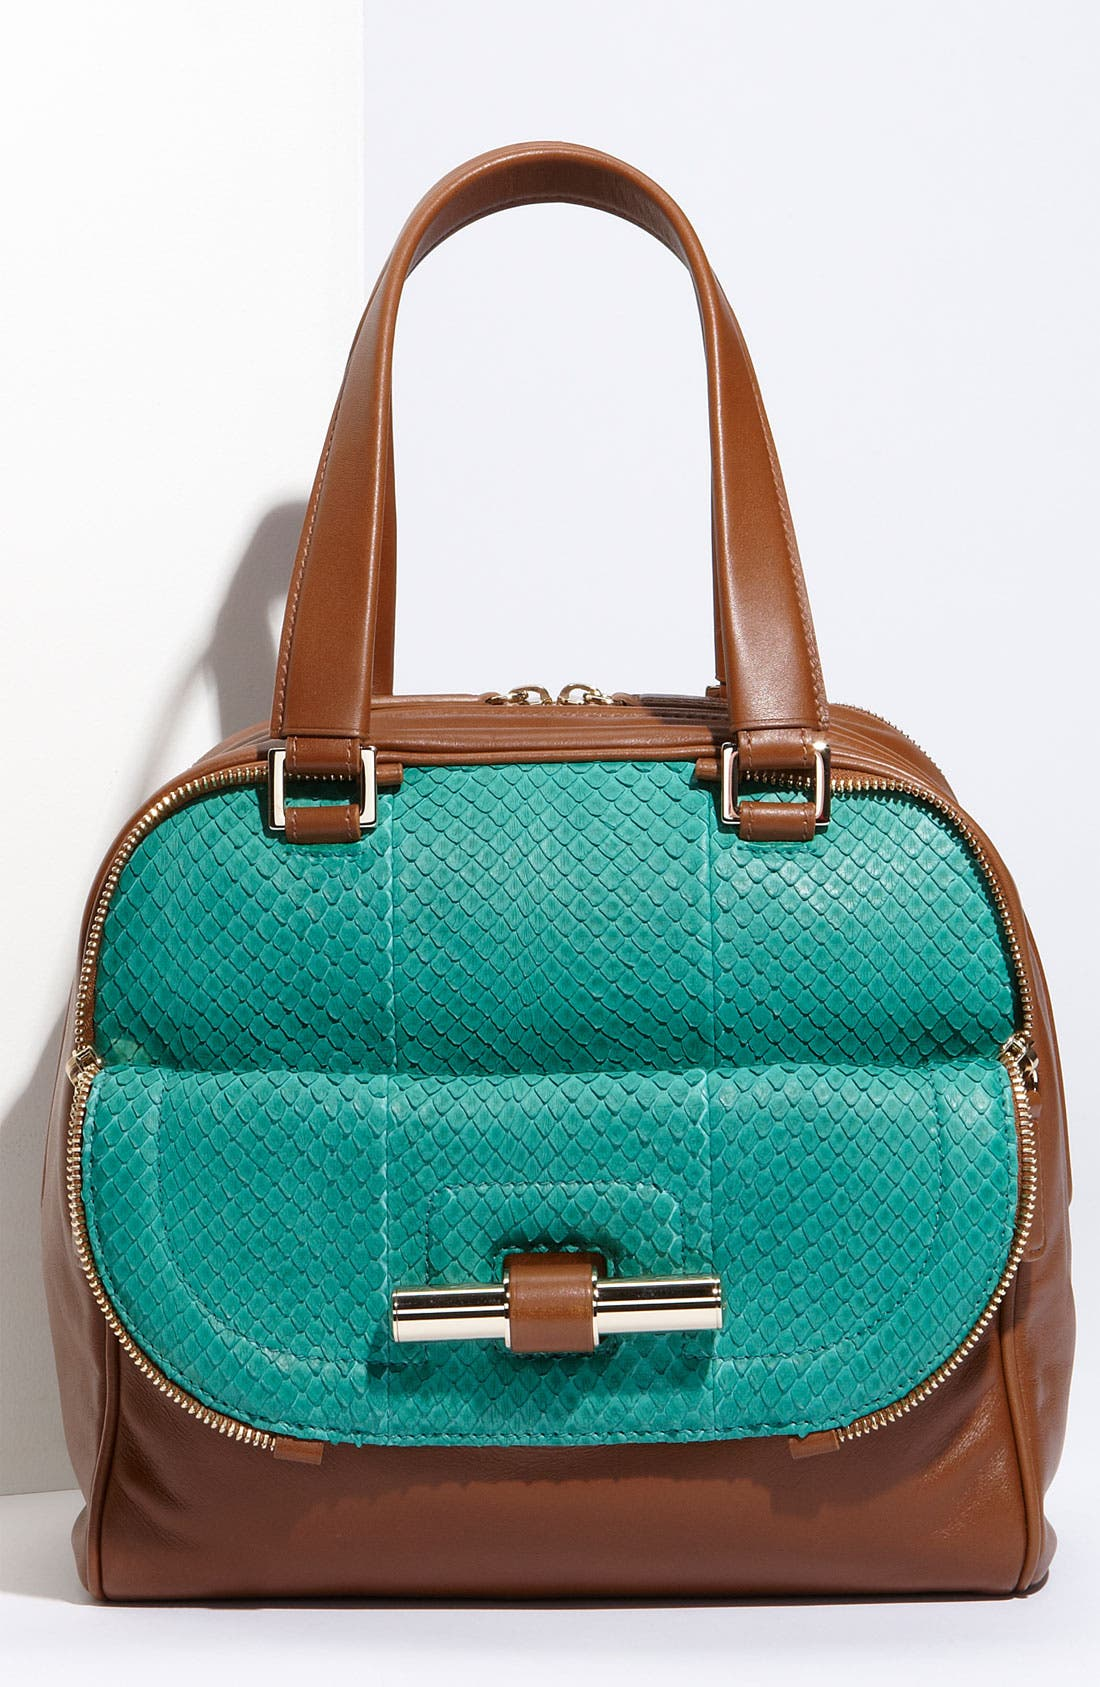 Alternate Image 1 Selected - Jimmy Choo 'Justine - Small' Leather & Genuine Anaconda Satchel